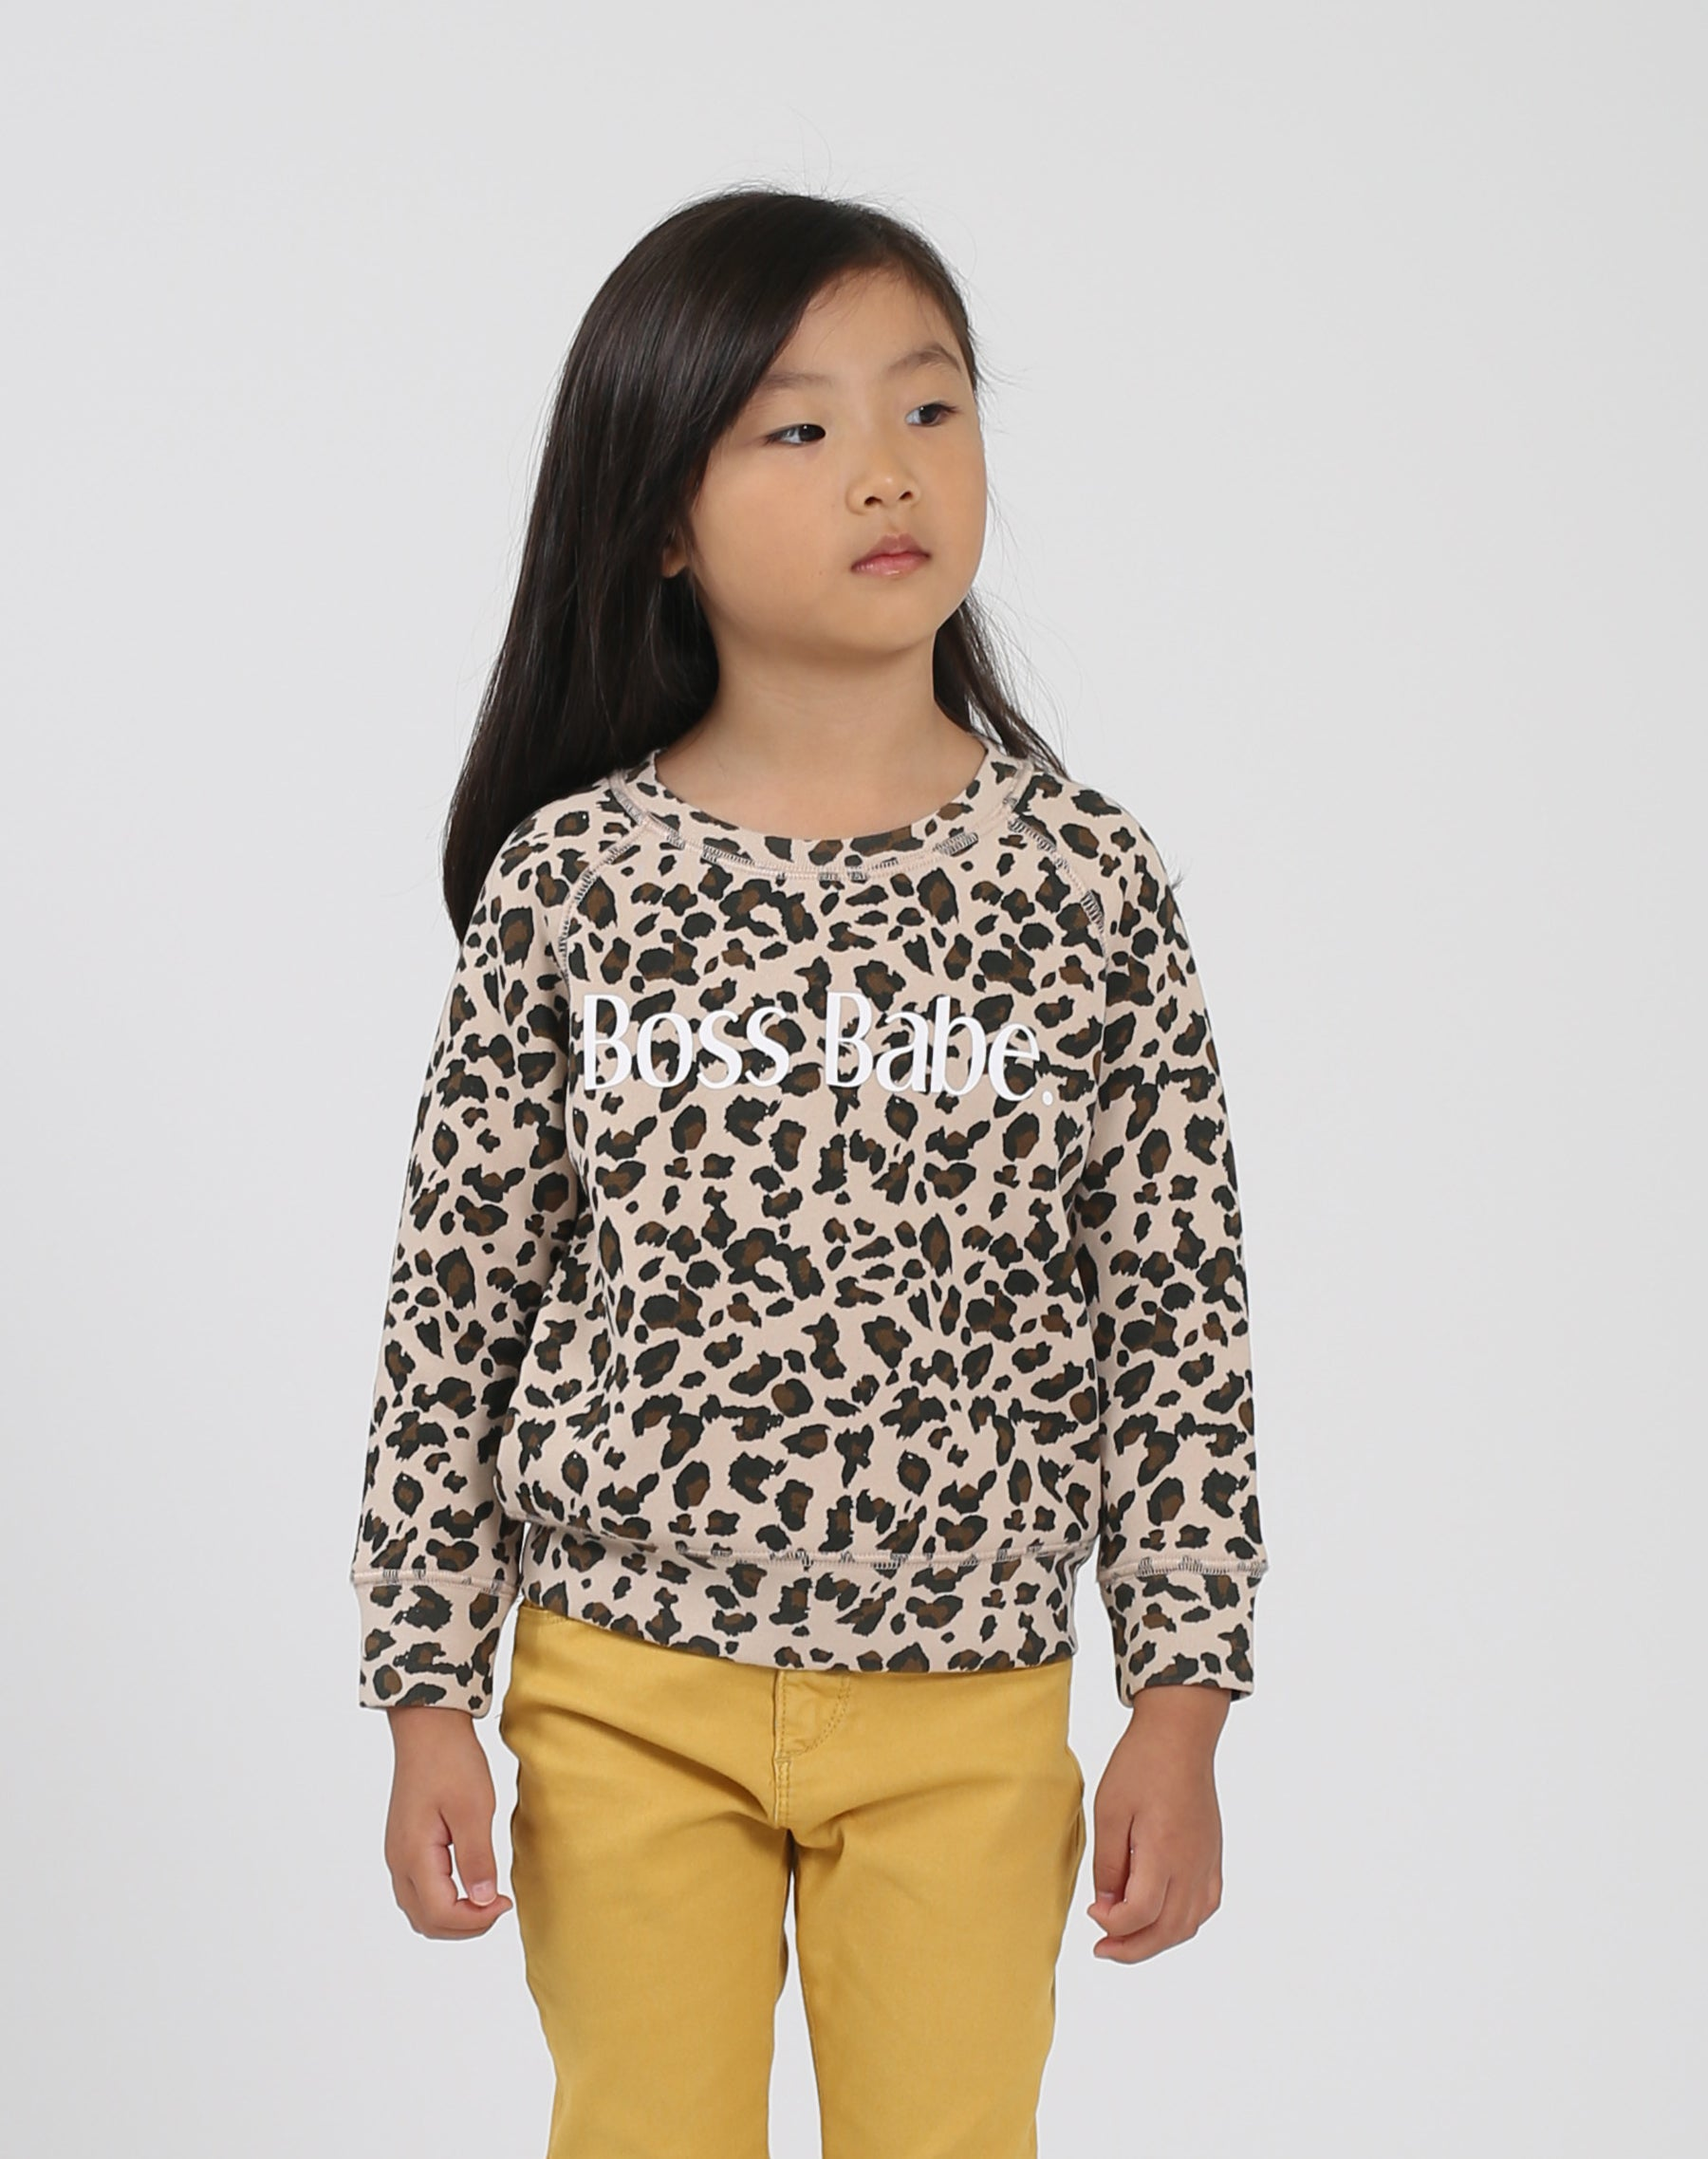 Photo 2 of the Boss Babe Little Babes classic crew neck sweatshirt in leopard by Brunette the Label.